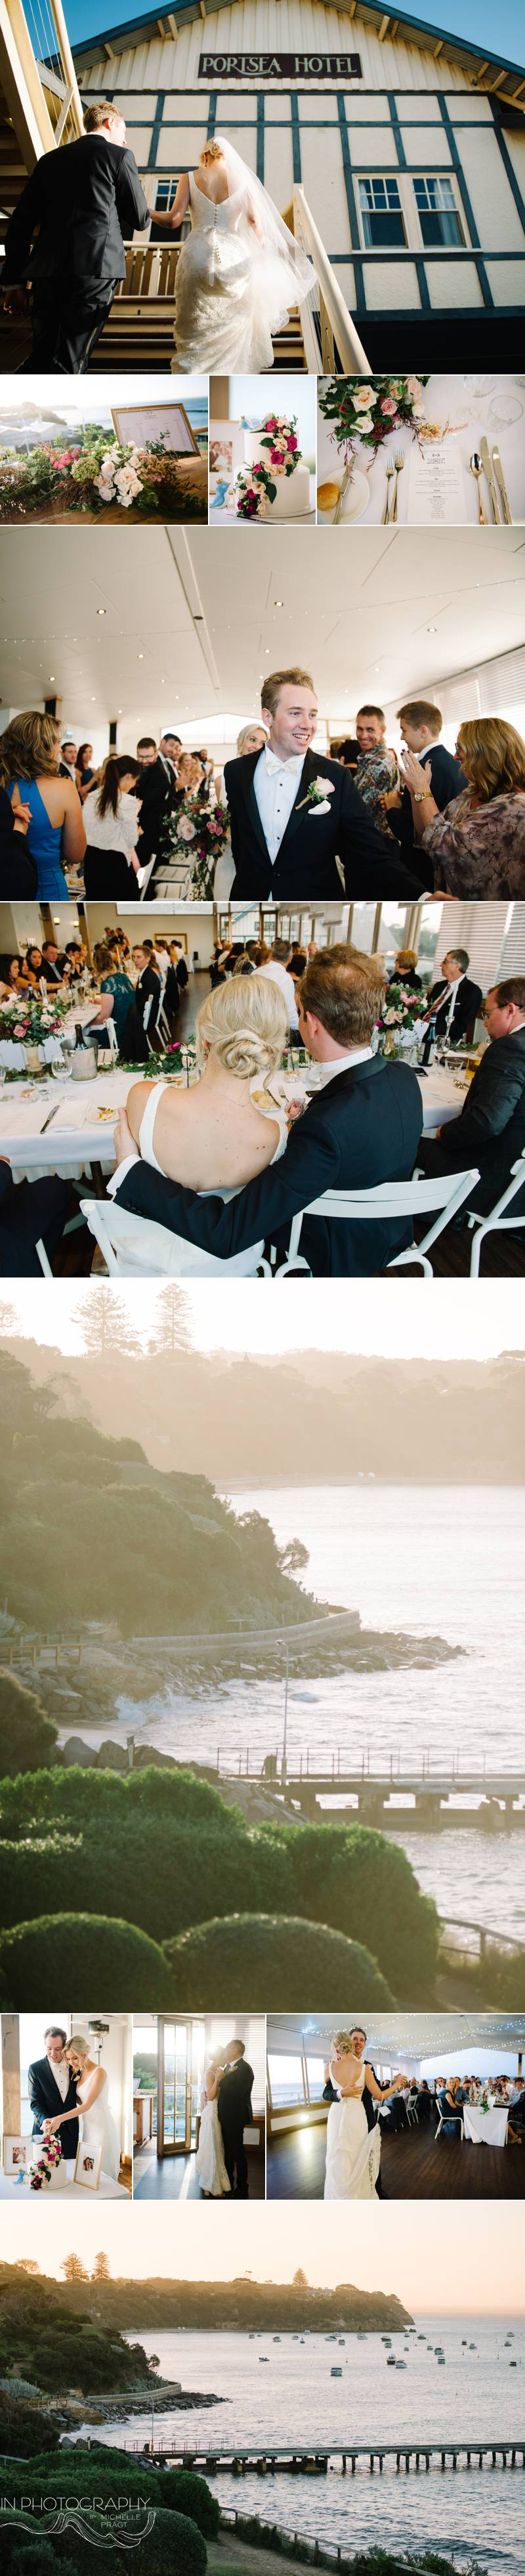 Portsea Hotel wedding reception